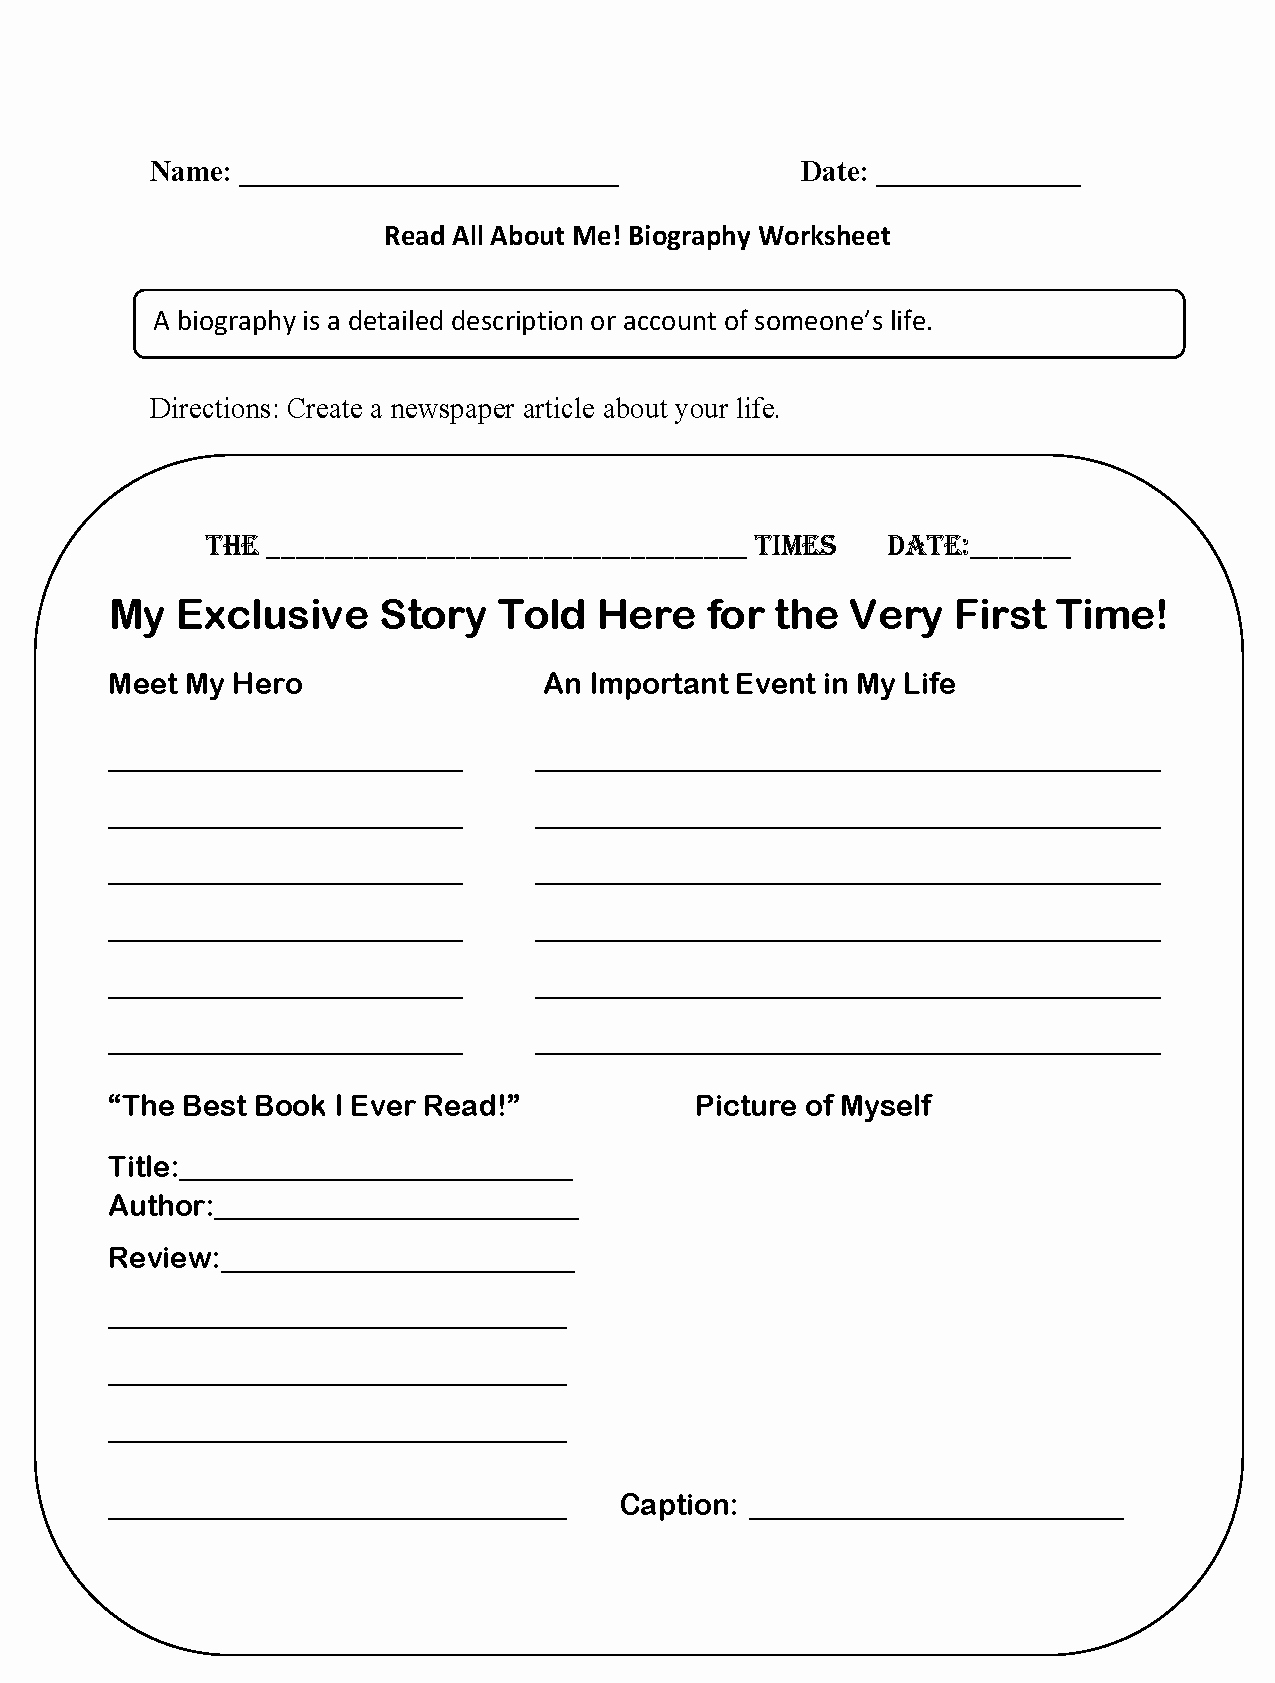 All About Me Worksheet Pdf New All About Me Worksheet Free Pdf the Best Worksheets Image